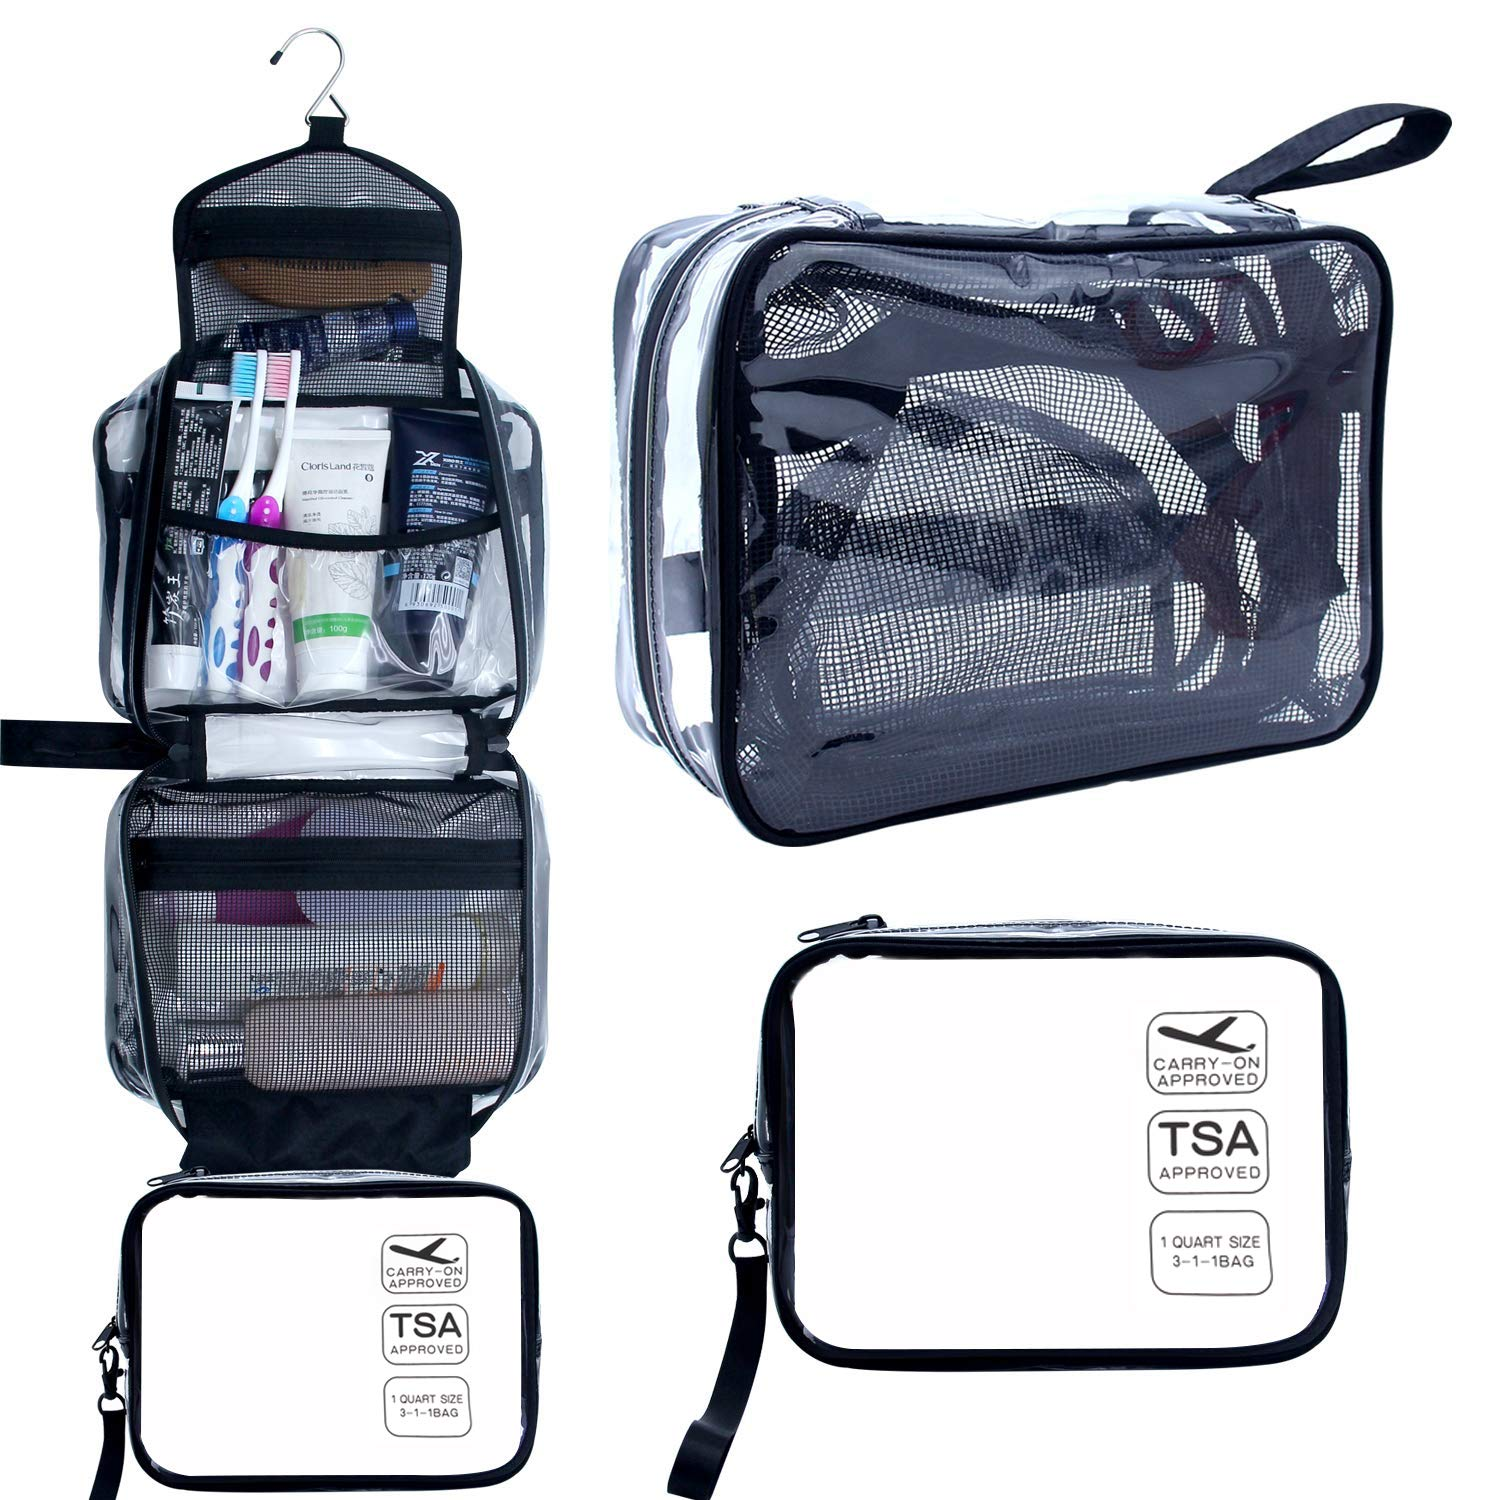 Hanging Toiletry Bag, Clear Travel Toiletry Bag with Detachable TSA Approved Small Clear Bag Airline 3-1-1 Carry On Compliant Bag Makeup Bag for Men and Women Black